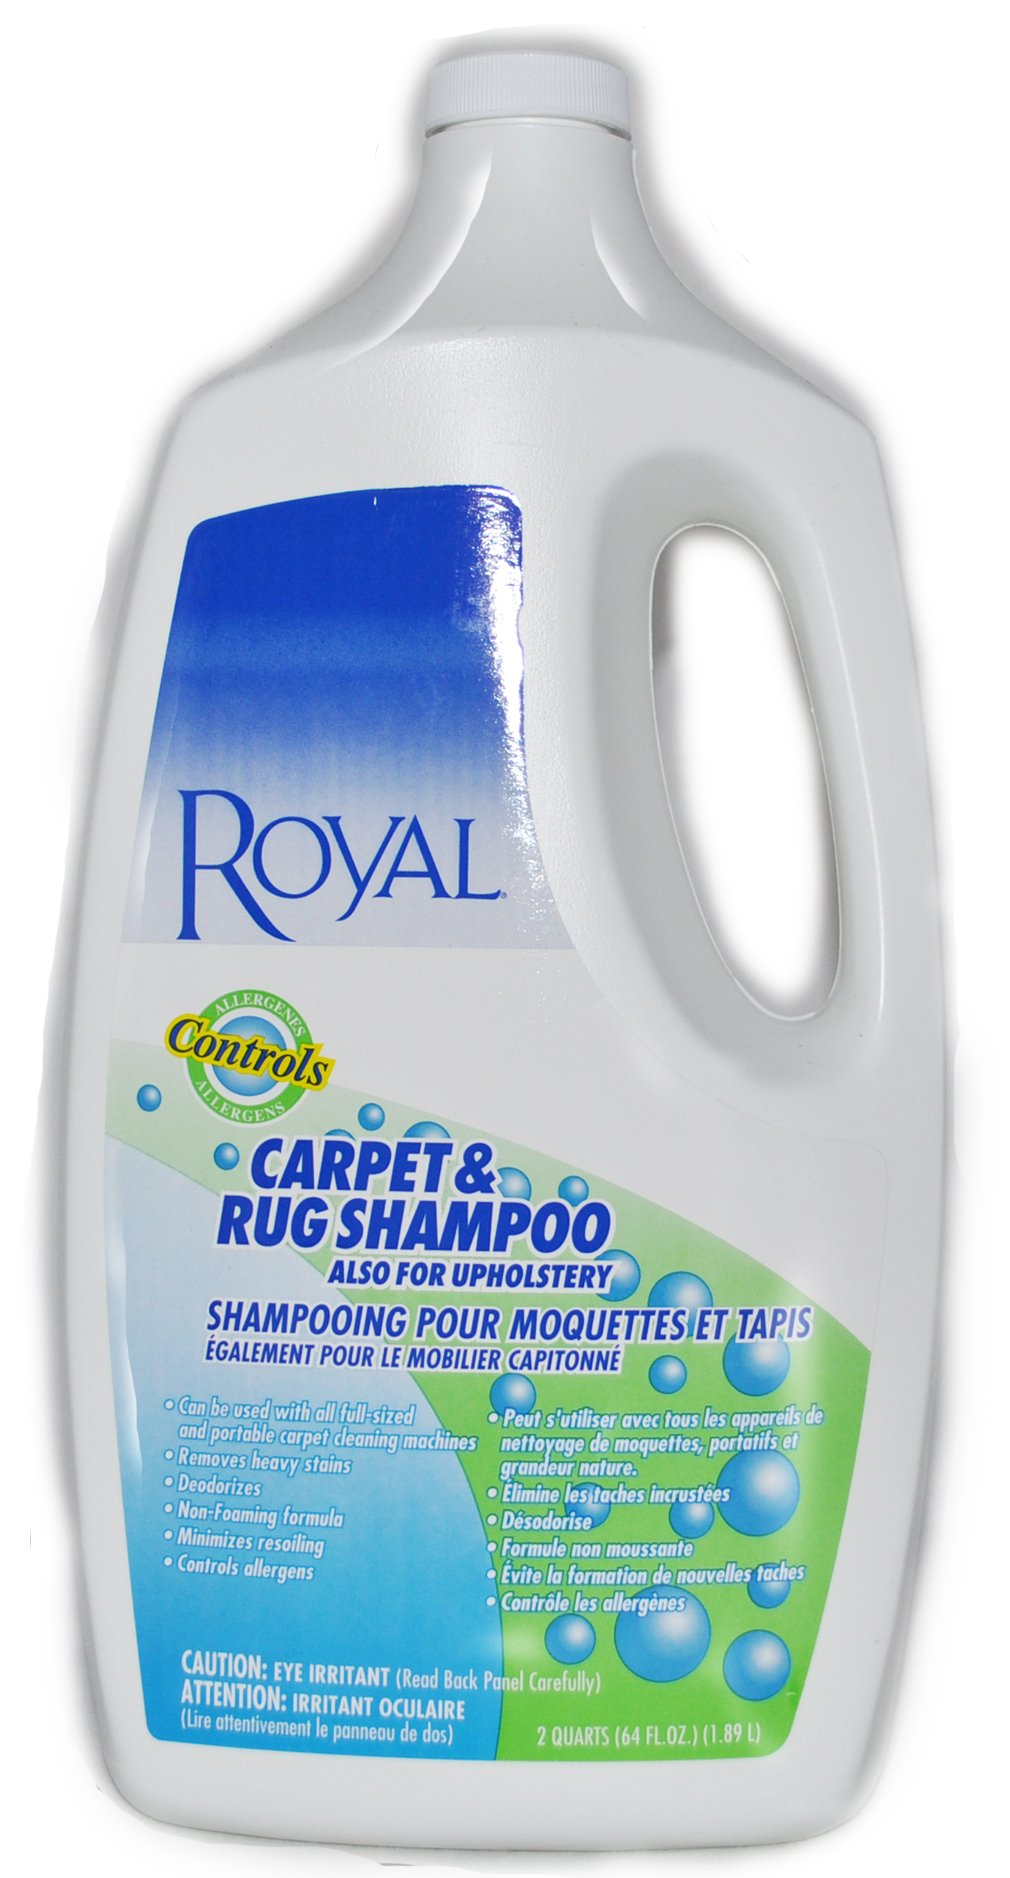 Royal Carpet & Rug Shampoo 64oz